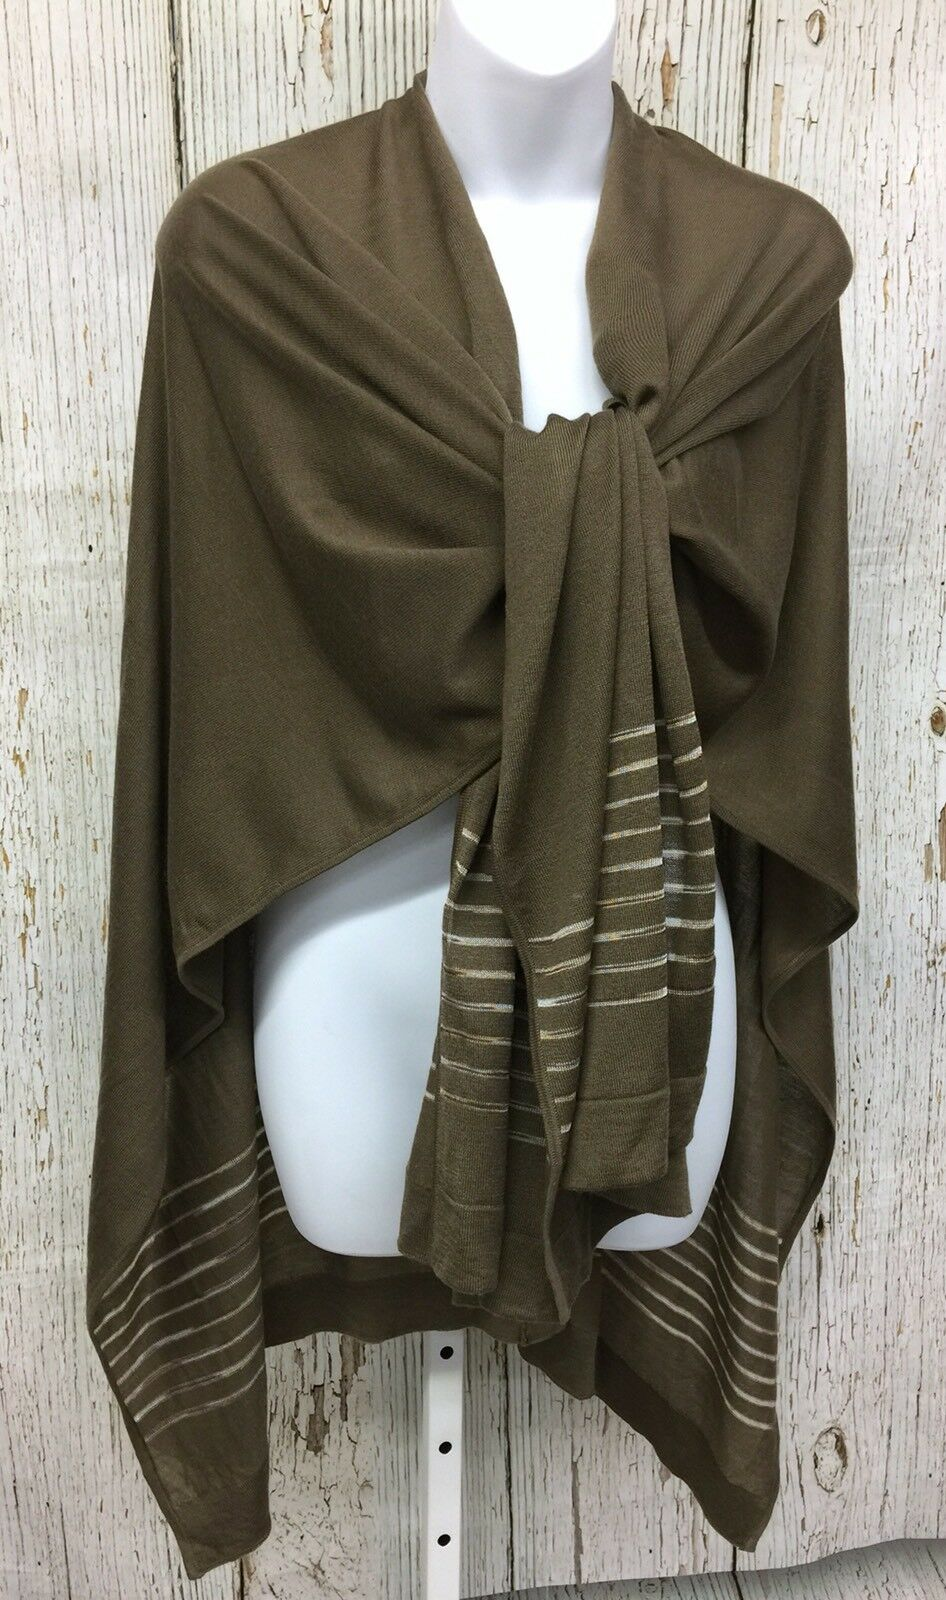 NWT Coldwater Creek Brn Essential Sunlit Open Front Wrap Shawl Women's Sweater